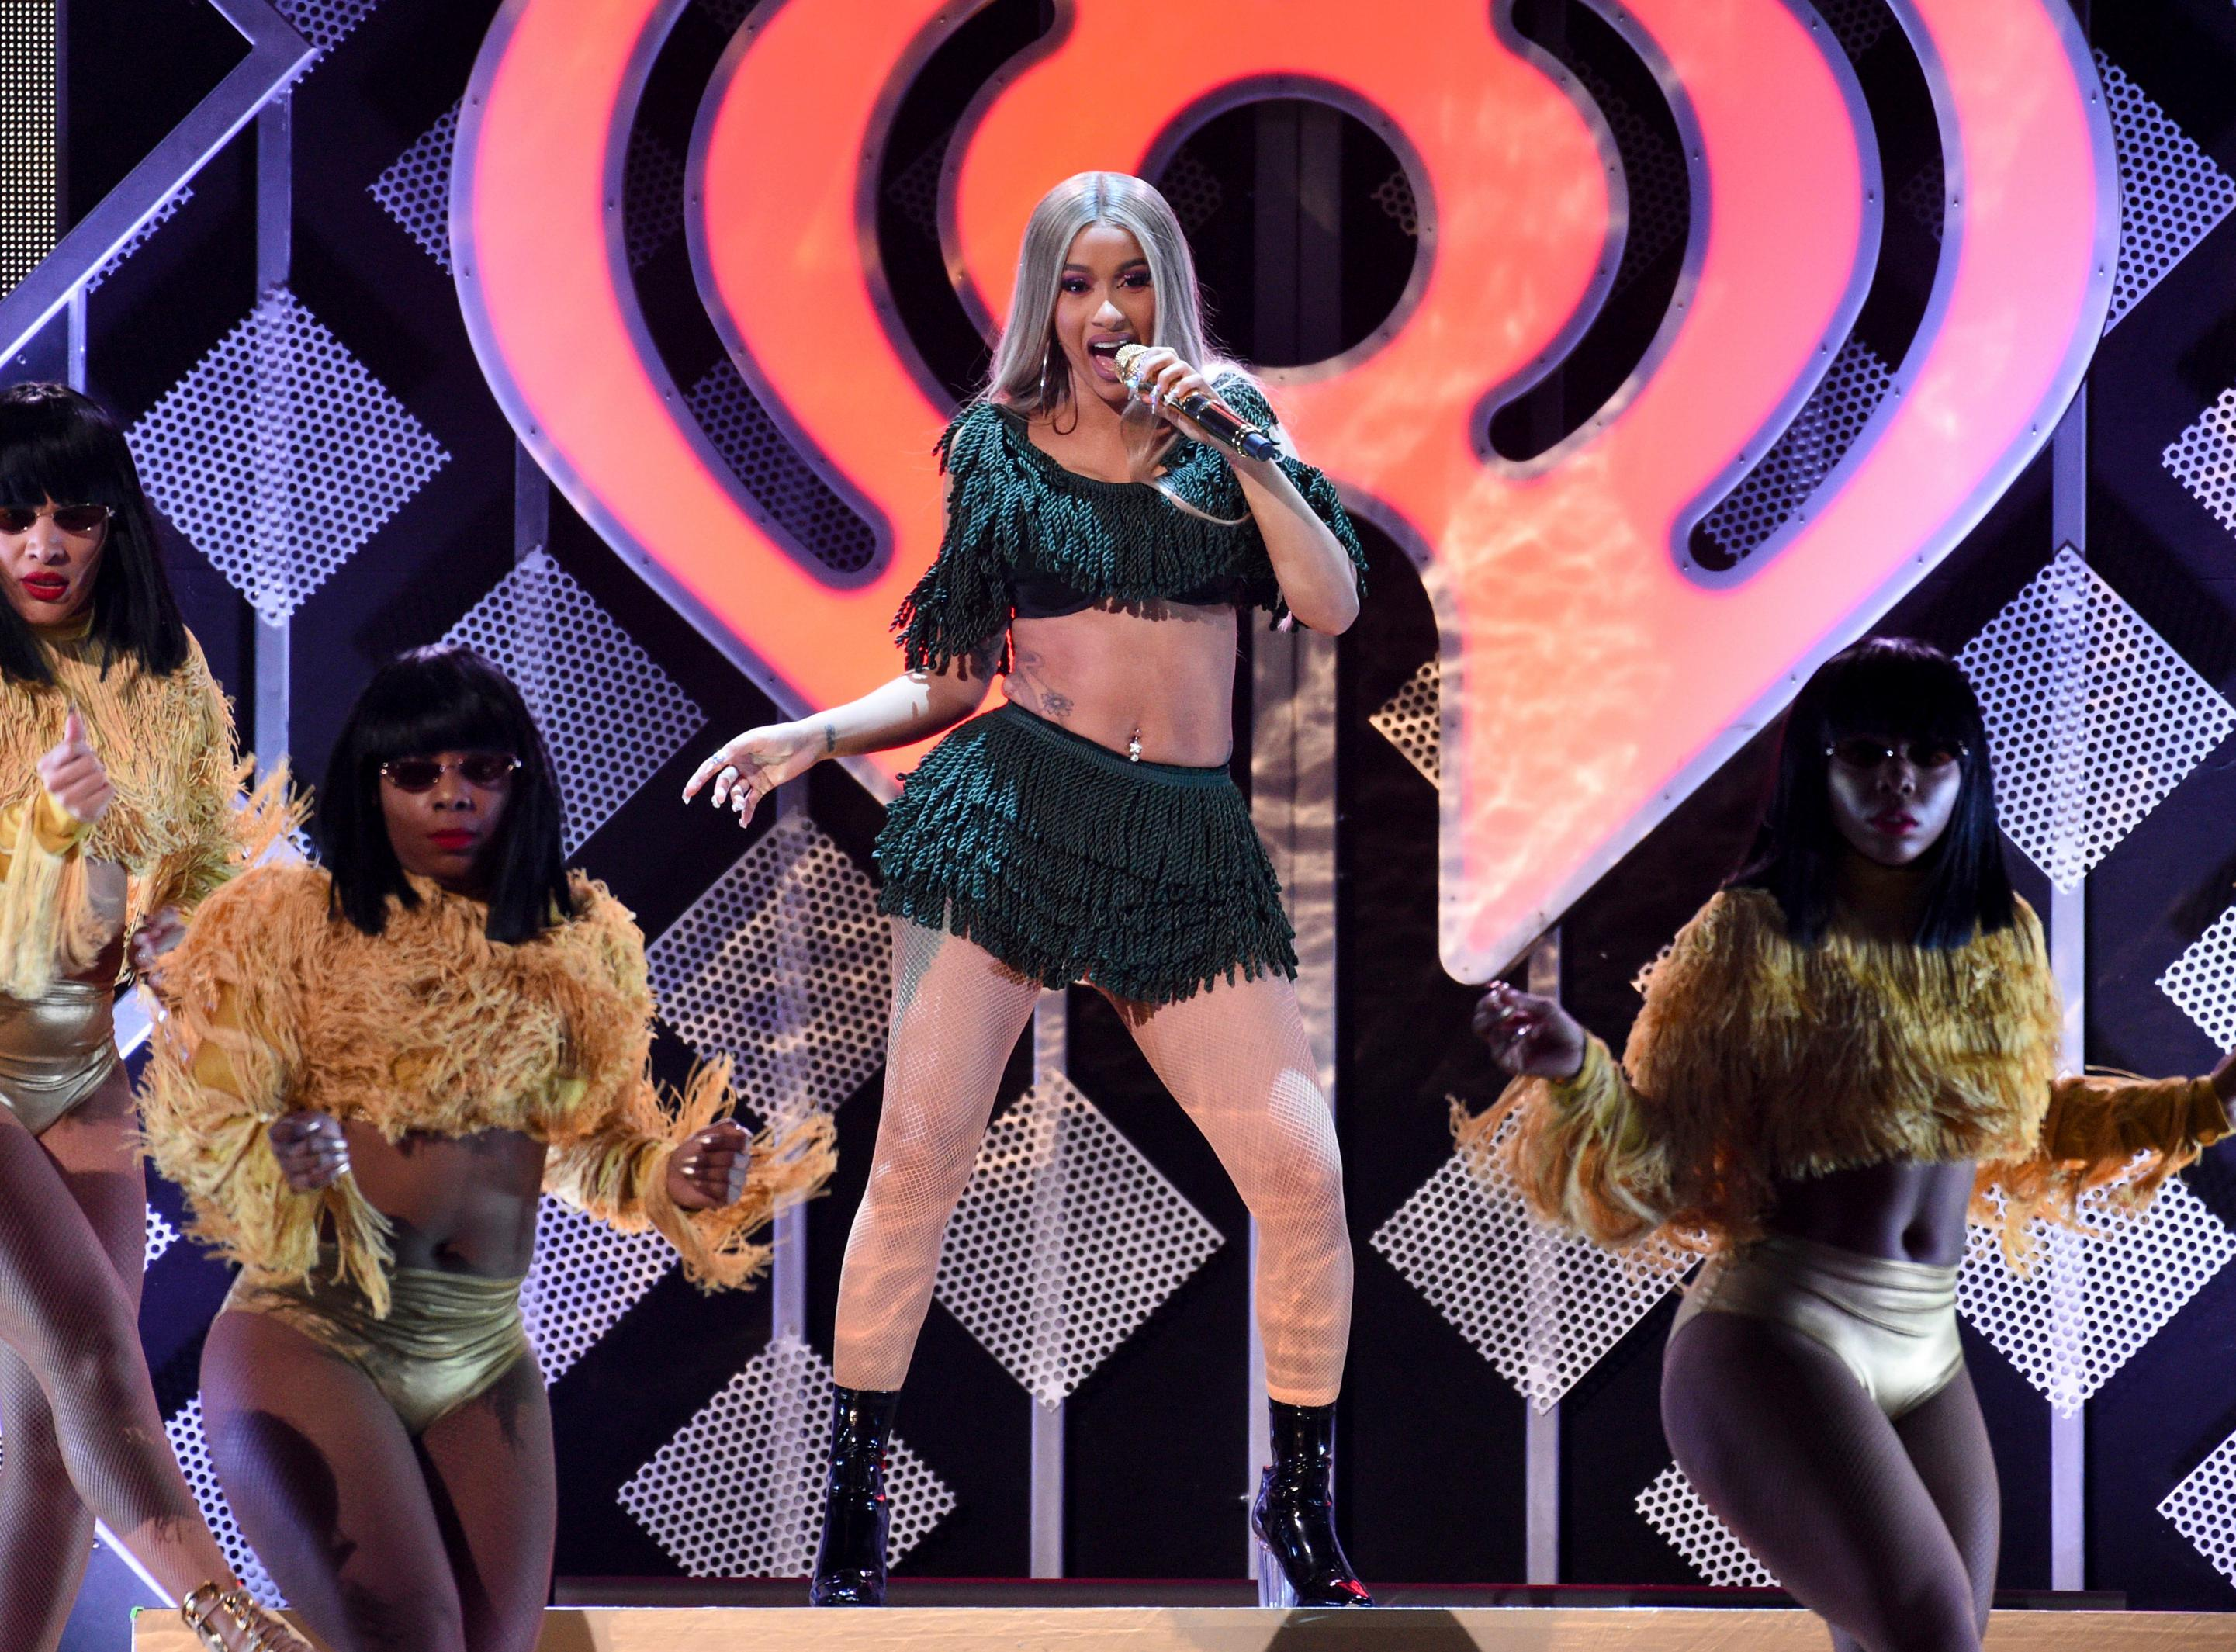 FILE - In this Dec. 7, 2018 file photo, hip-hop recording artist Cardi B performs at Z100's iHeartRadio Jingle Ball in New York.(Photo by Evan Agostini/Invision/AP, File)